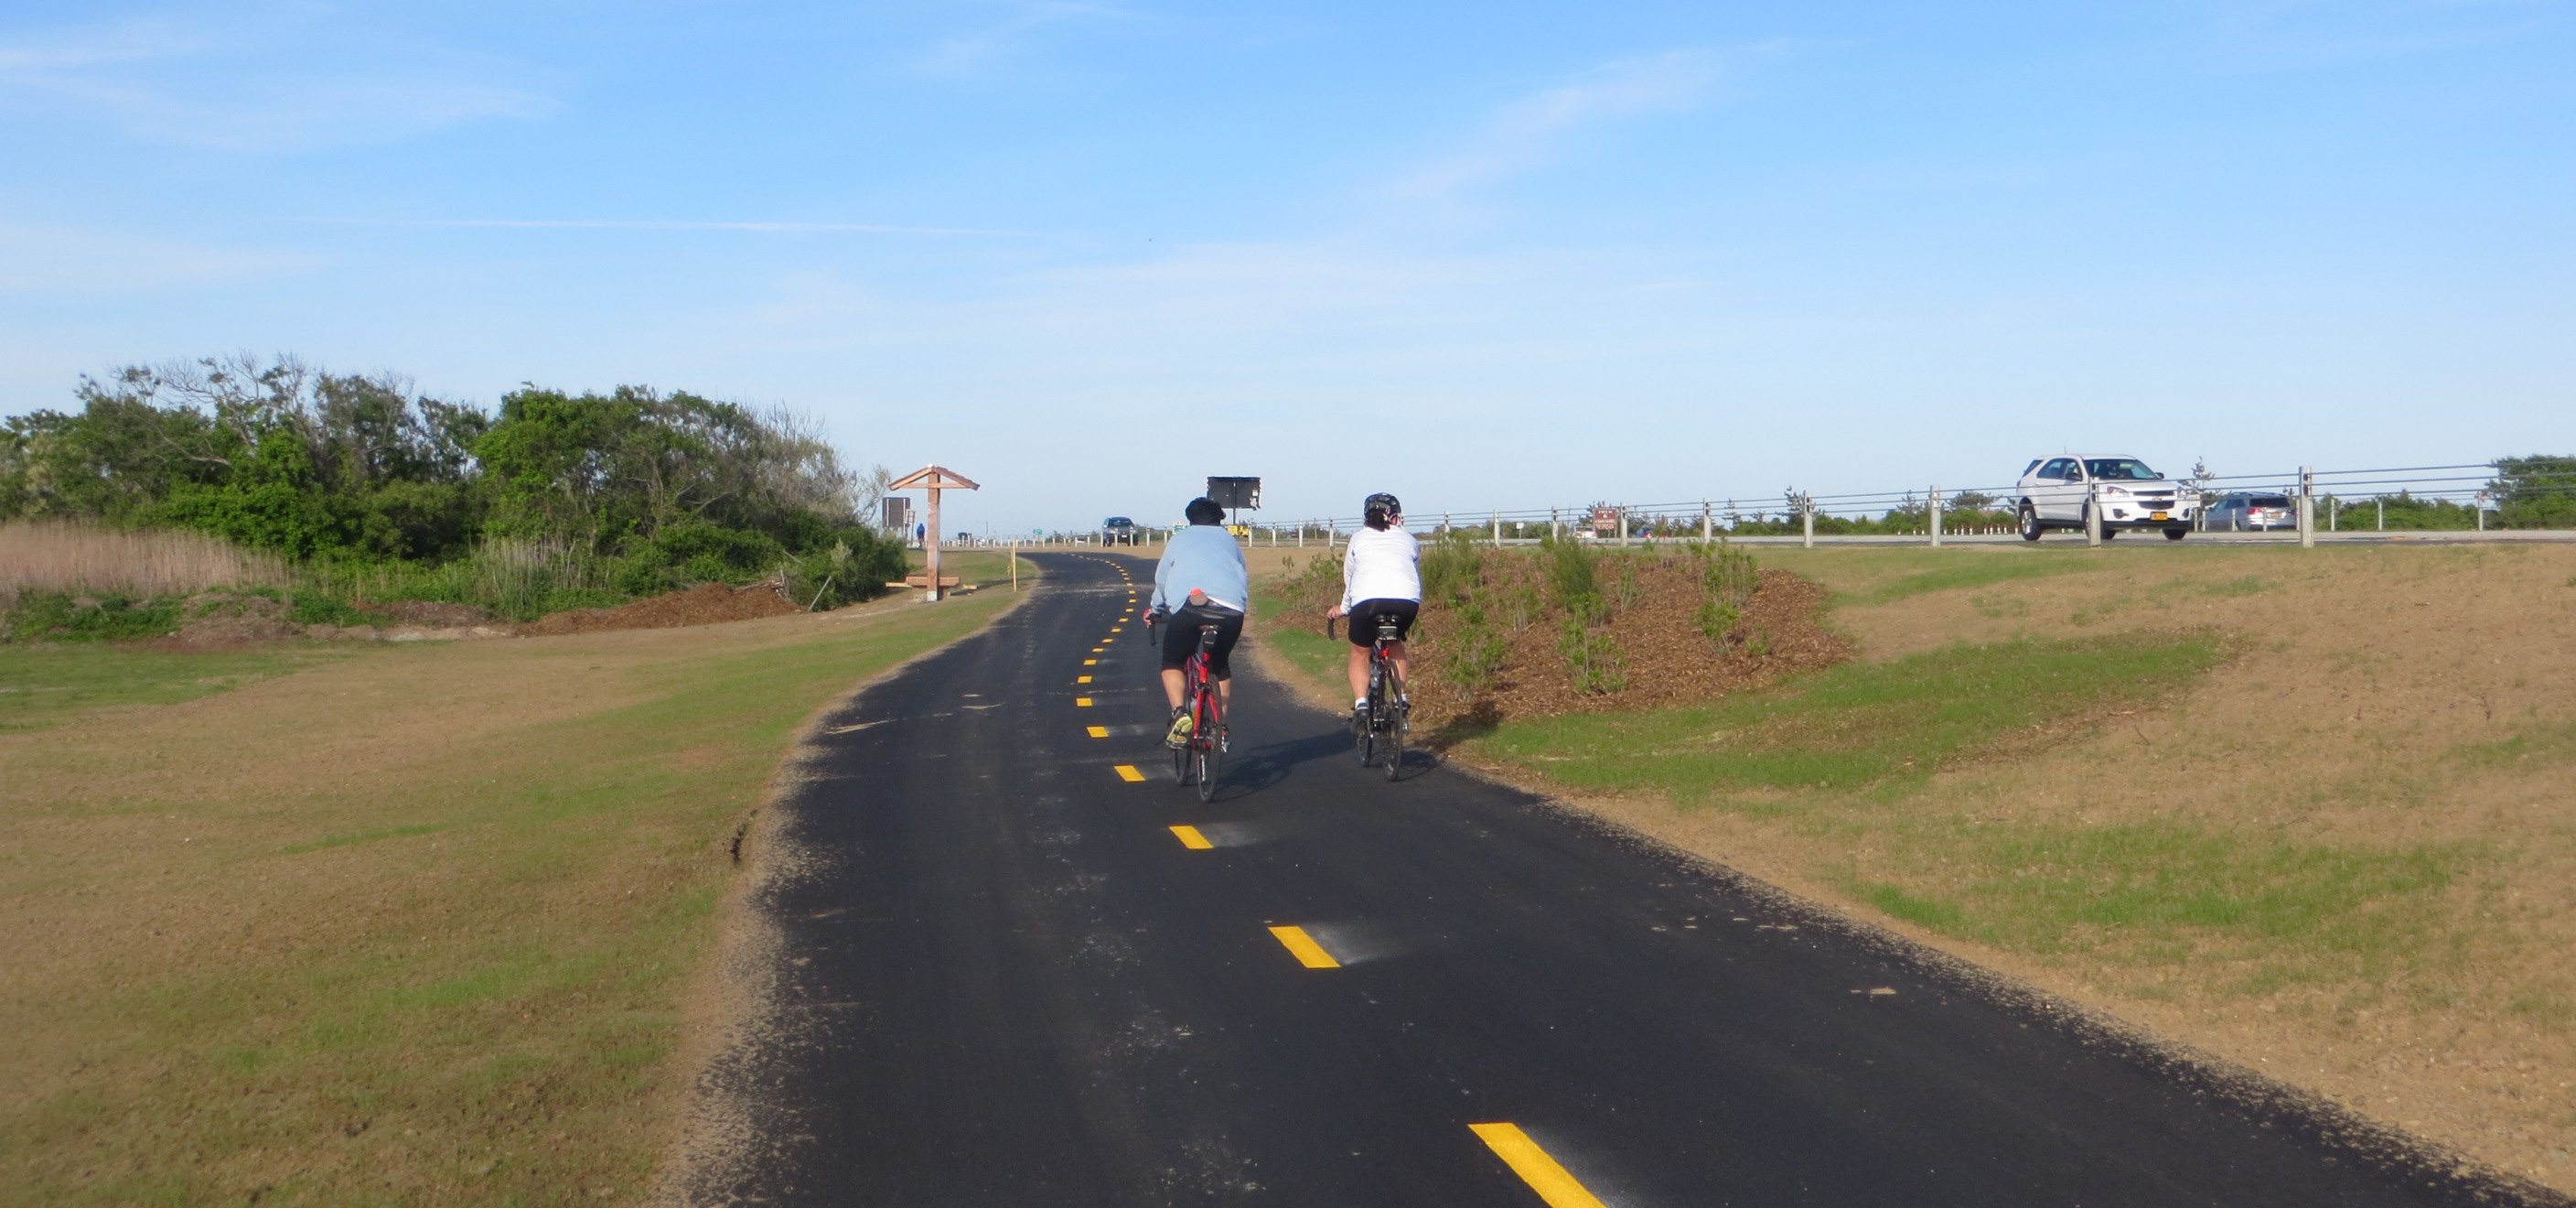 Shared Bikeway in jones Beach